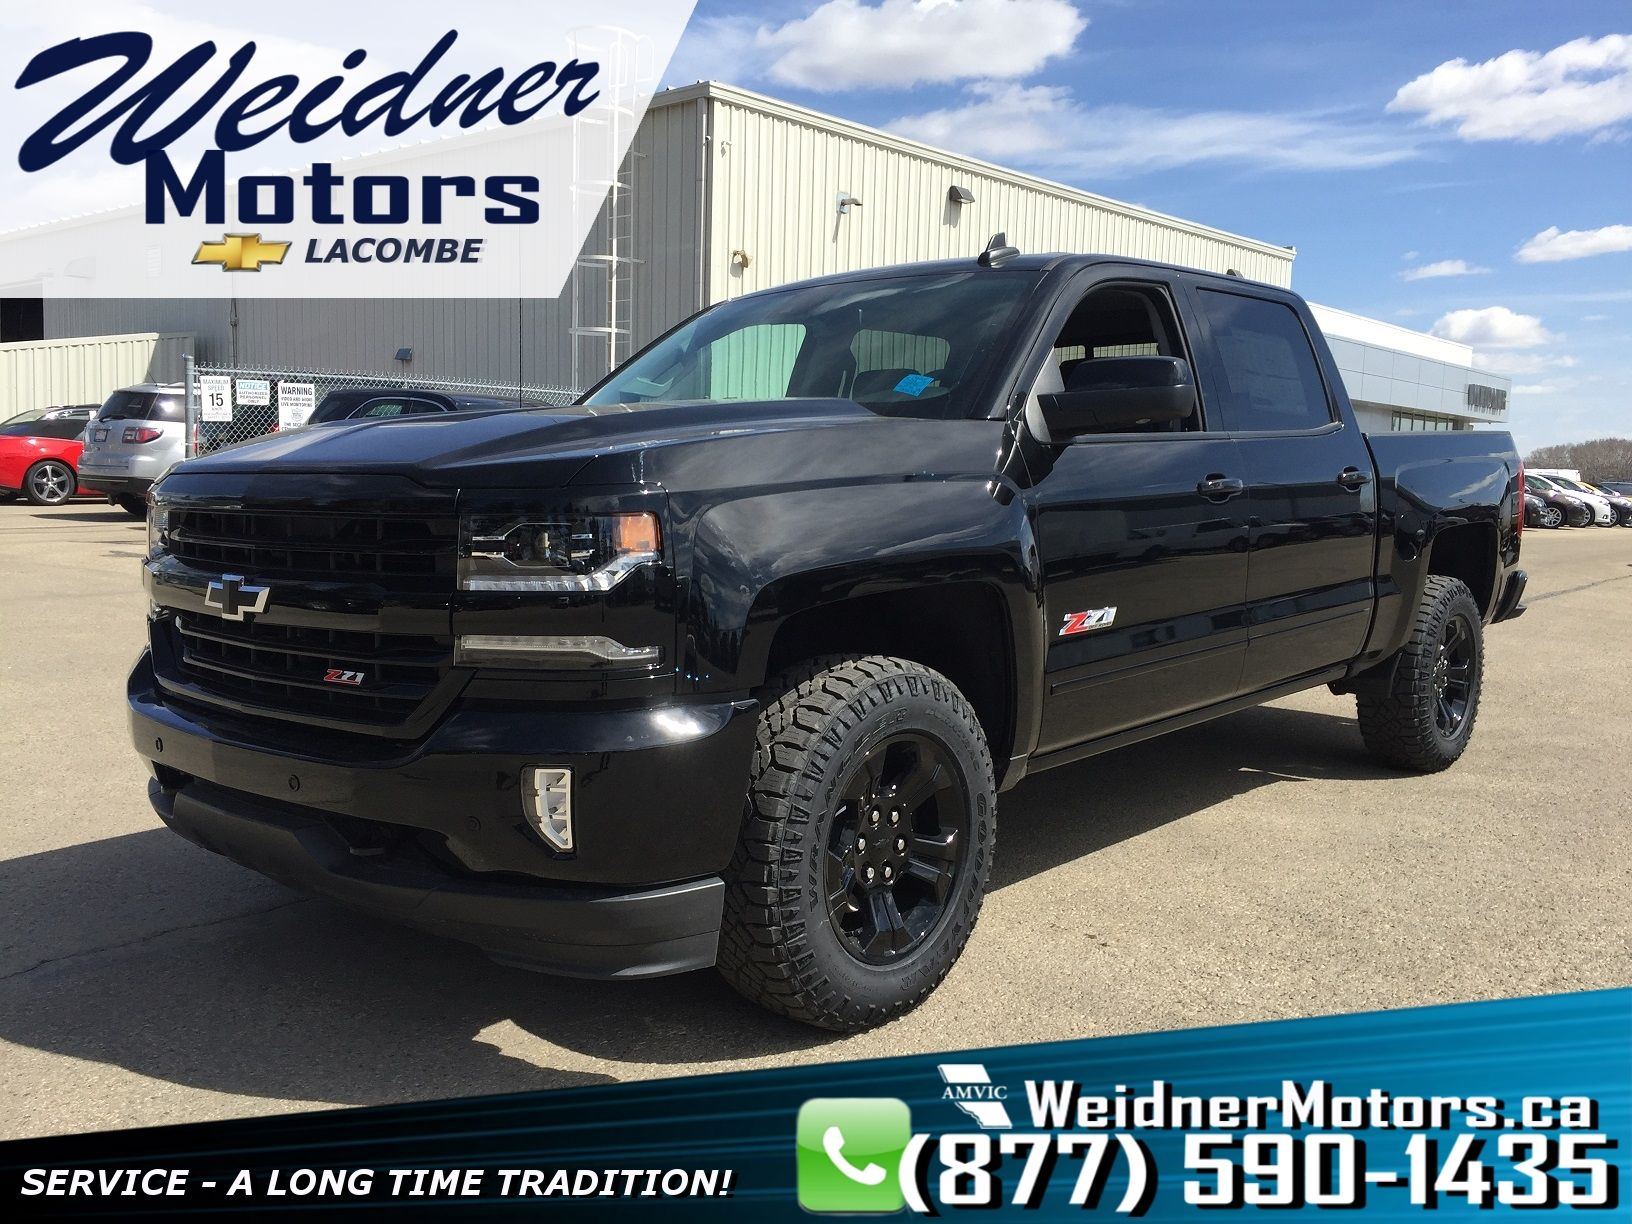 2018 Chevrolet Silverado 1500 2lz Crew Cab Short Box Midnight